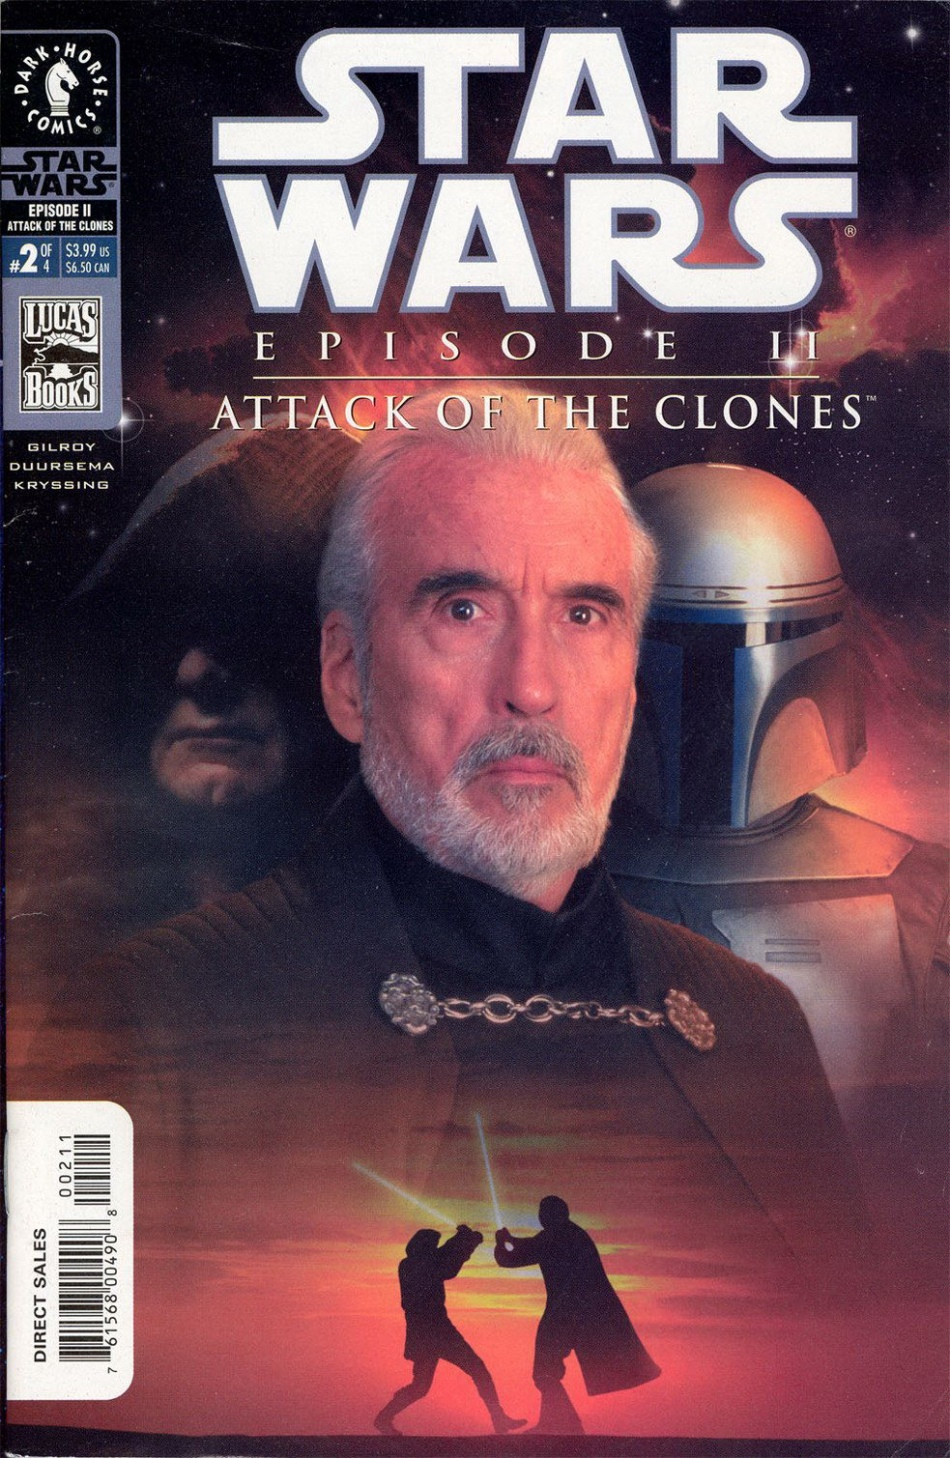 Episode II: Attack of the Clones #2 (Photo Cover) (24.04.2002)